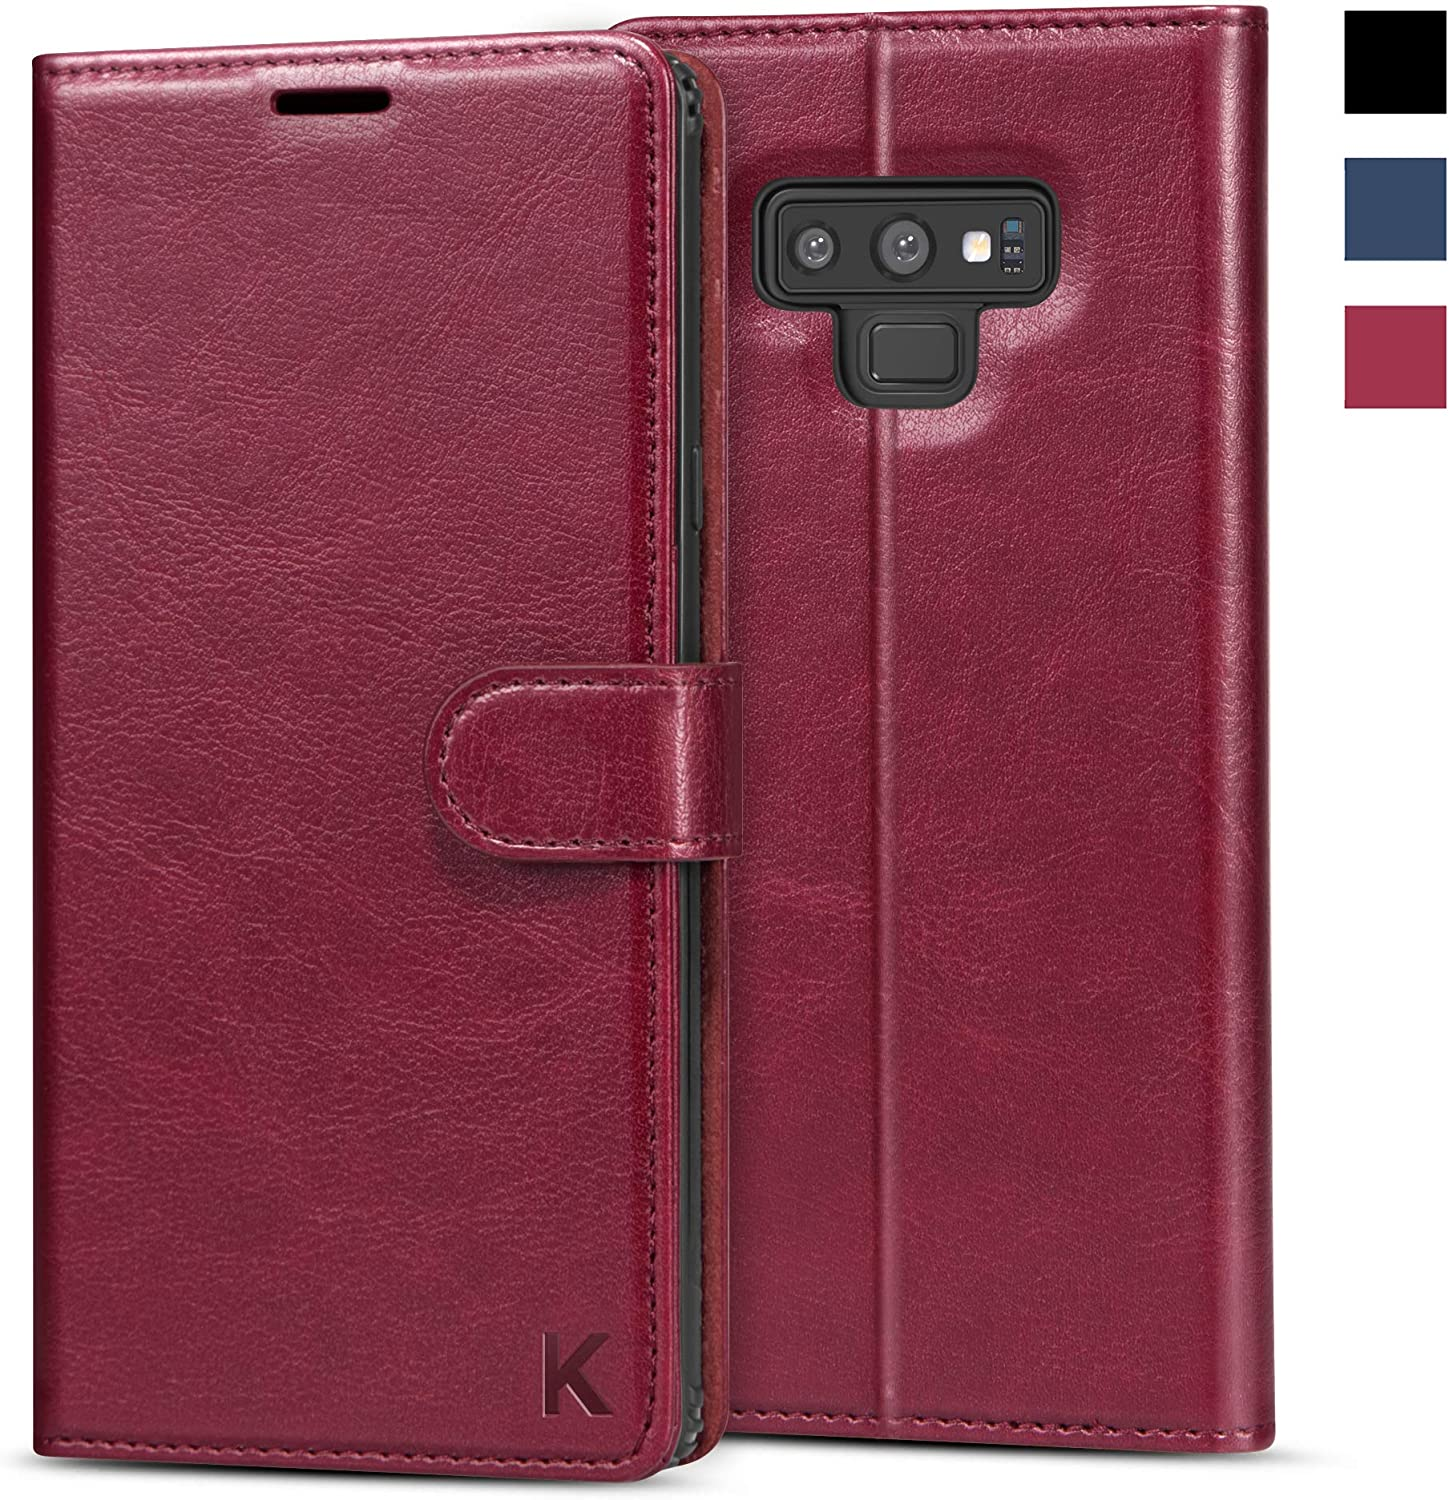 KILINO Galaxy Note 9 Wallet Case [S-Pen Fully Compatible] [RFID Blocking] [PU Leather] [Shock-Absorbent Bumper] [Soft TPU] [Card Slots] [Kickstand] Flip Folio Cover for Samsung Galaxy Note9 (Burgundy)